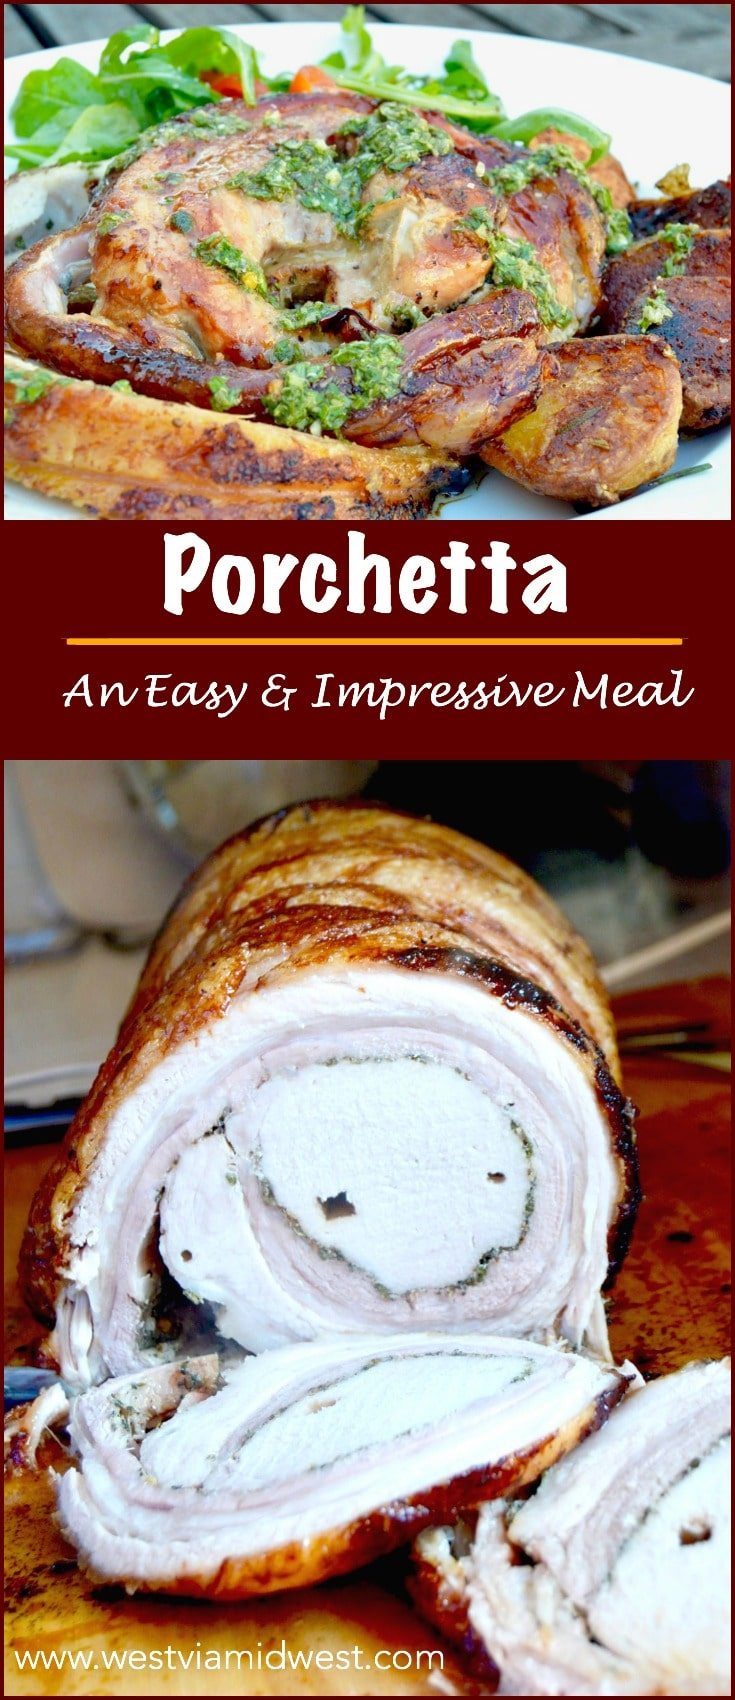 Porchetta: Crispy Pork Belly Wrapped Roast:  Meat seasoned with herbs wrapped around a pork tenderloin and cooked to juicy, tender perfection.  A crazy impressive meal to your guests, but you'll know how simple it was to make!